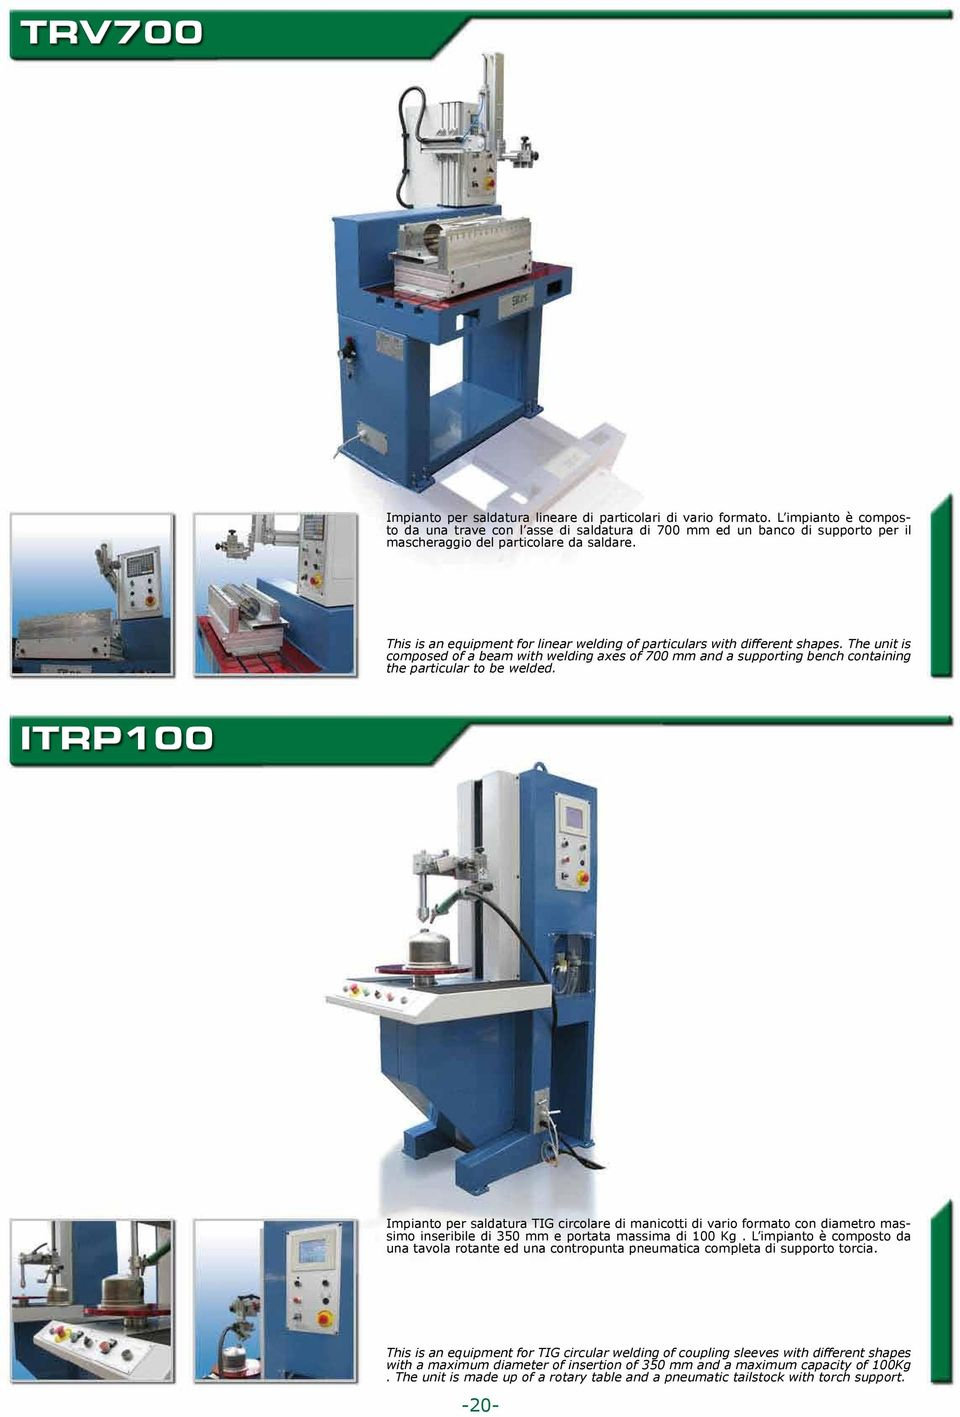 This is an equipment for linear welding of particulars with different shapes. The unit is composed of a beam with welding axes of 700 mm and a supporting bench containing the particular to be welded.